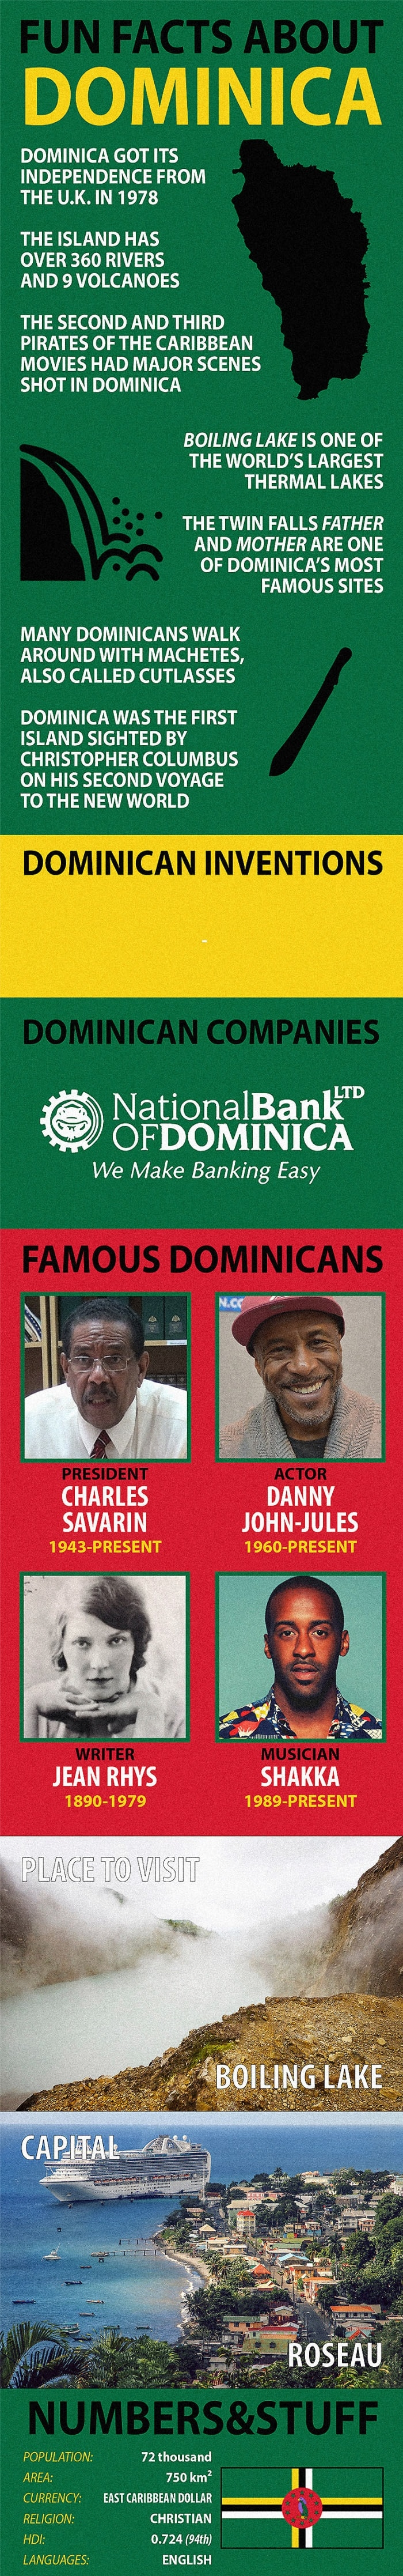 Facts about Dominica